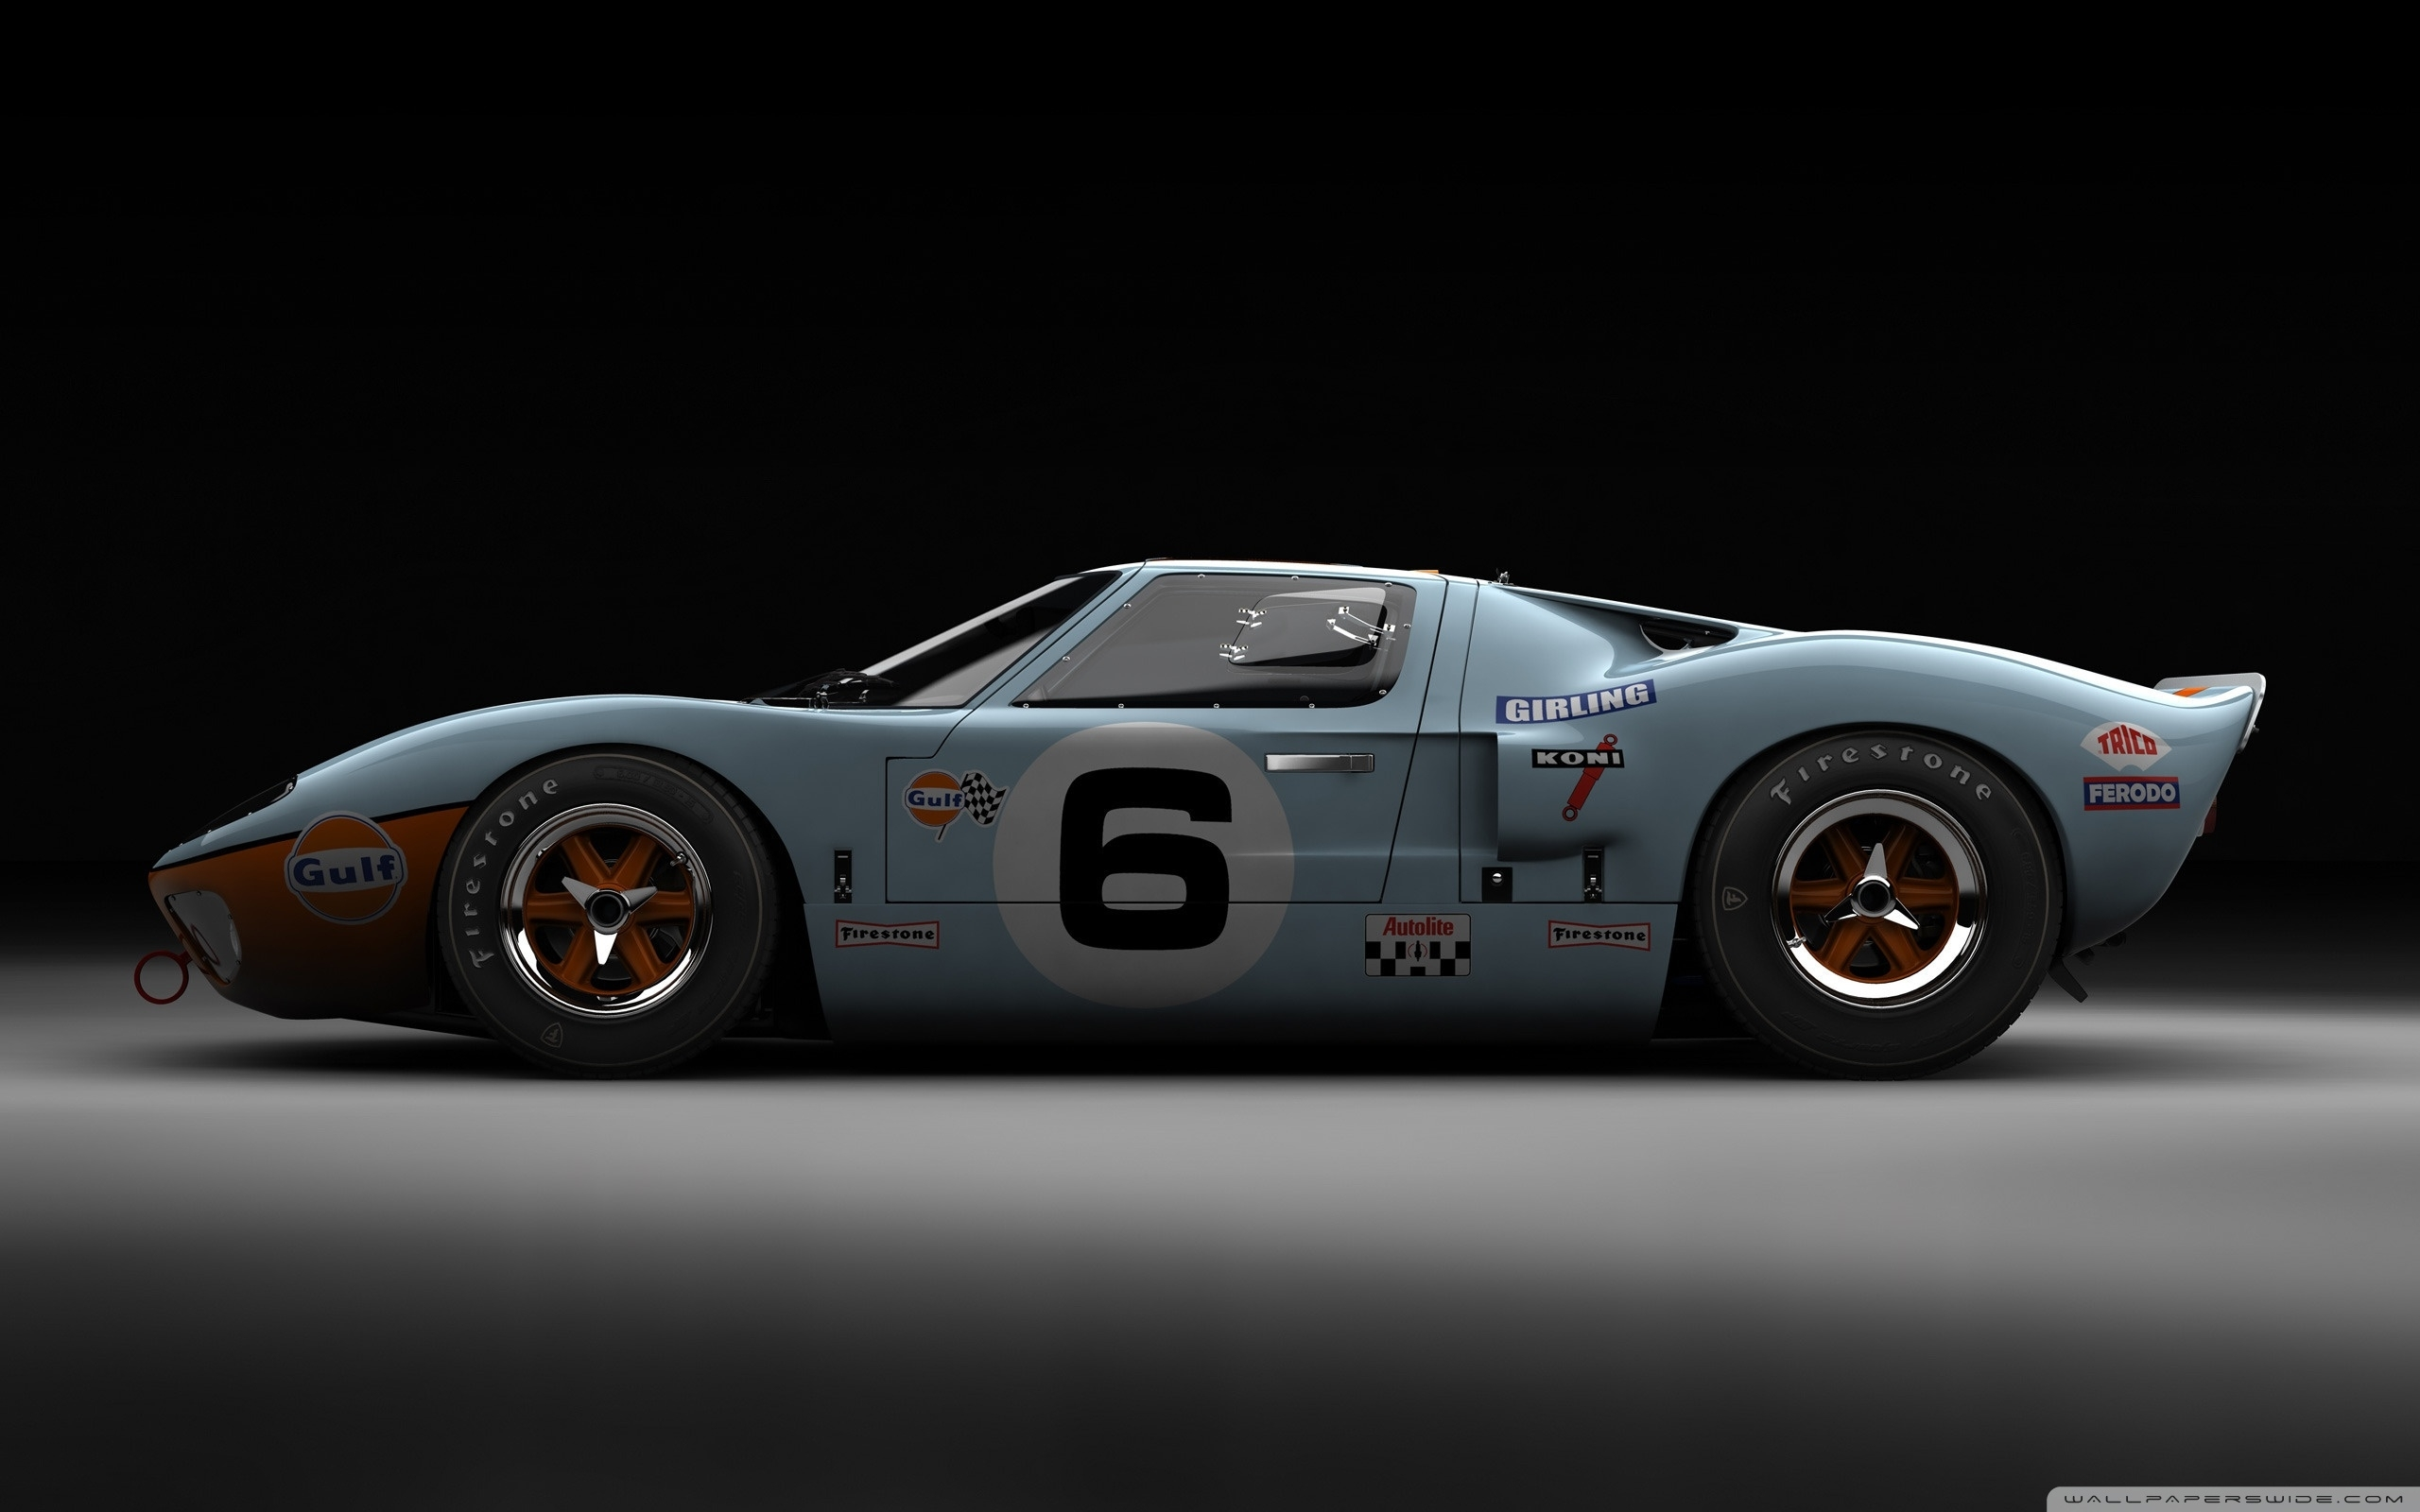 10 Best Ford Gt40 Wallpapers High Resolution FULL HD 1920×1080 For PC Desktop